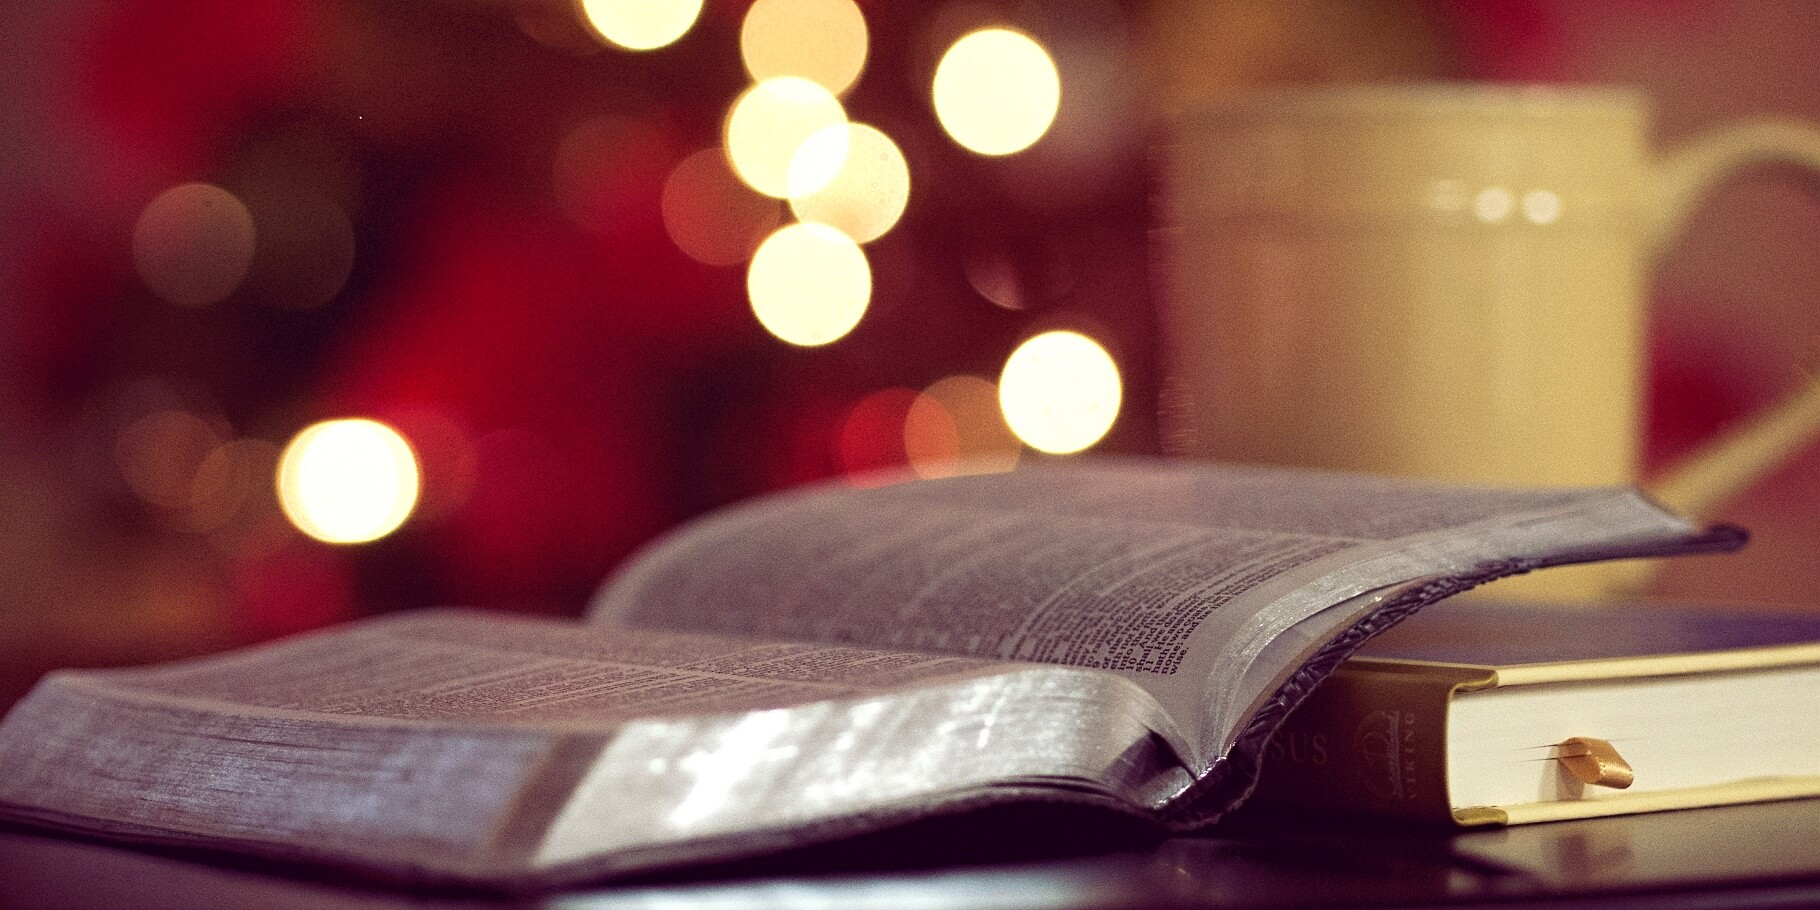 bible, book, mug, lights